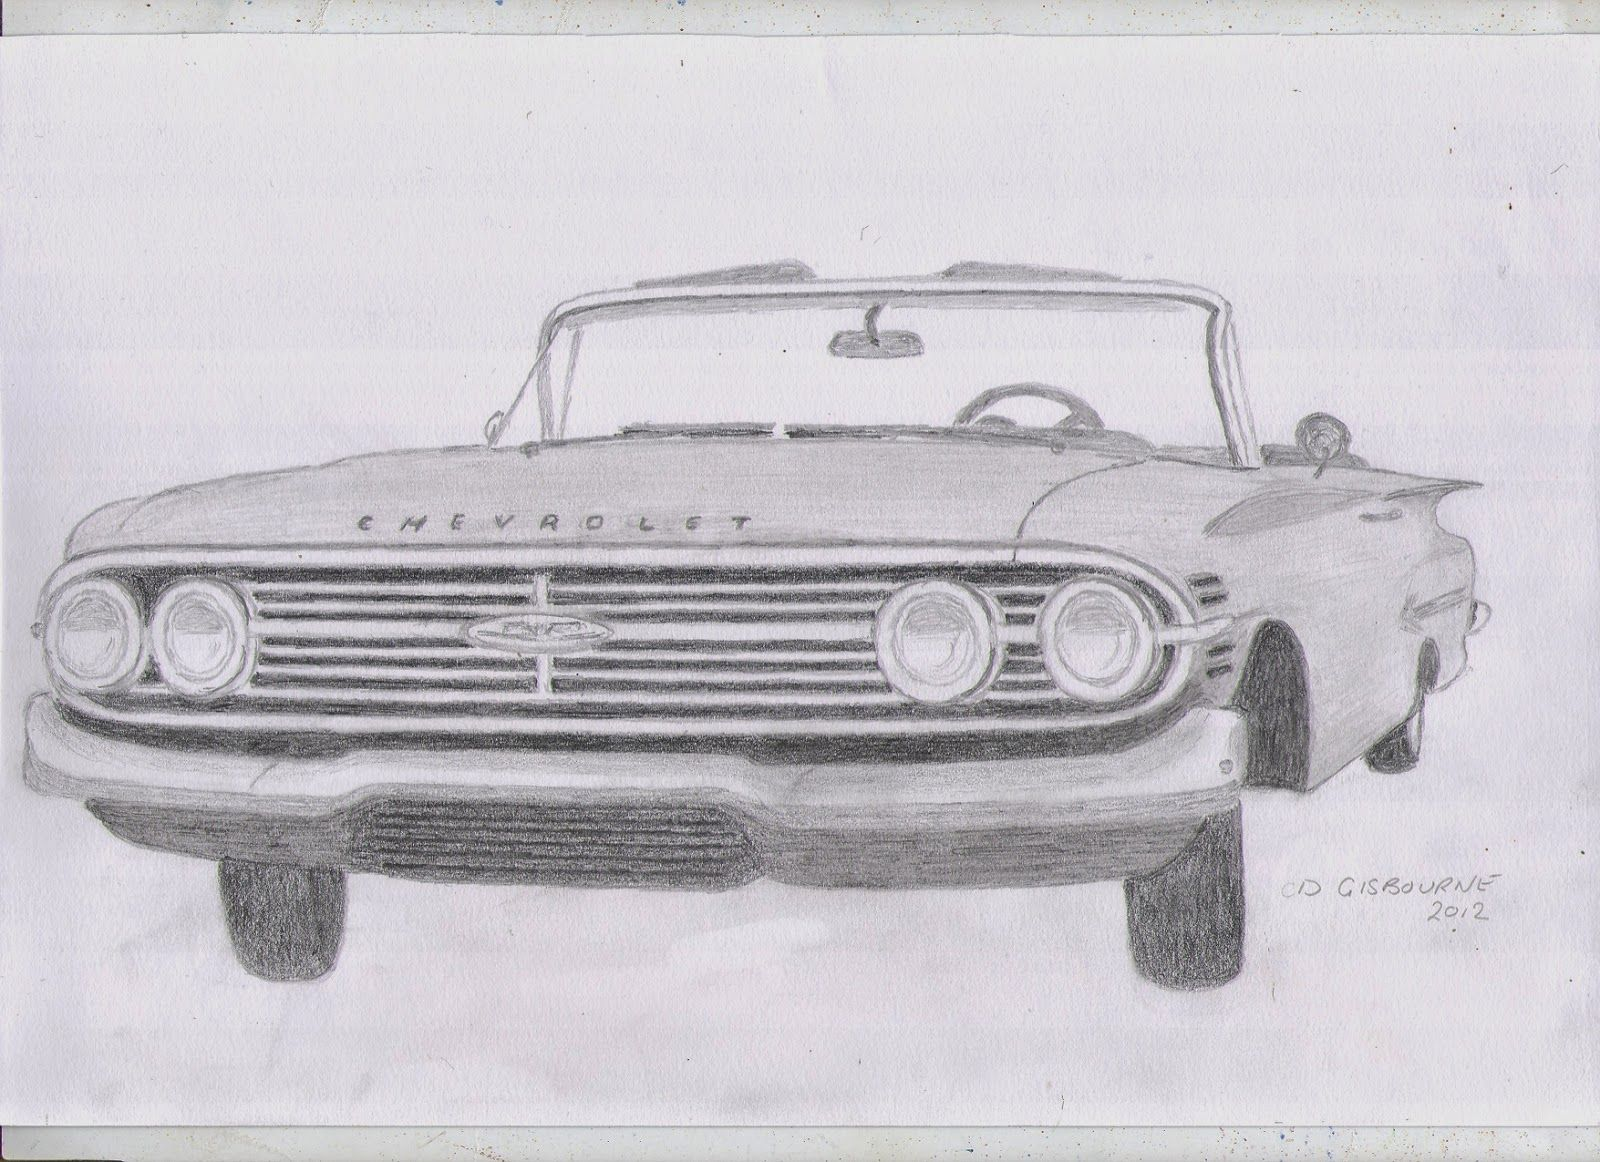 Pencil Drawing Of A 1960 Chevrolet Impala Cars Pinterest